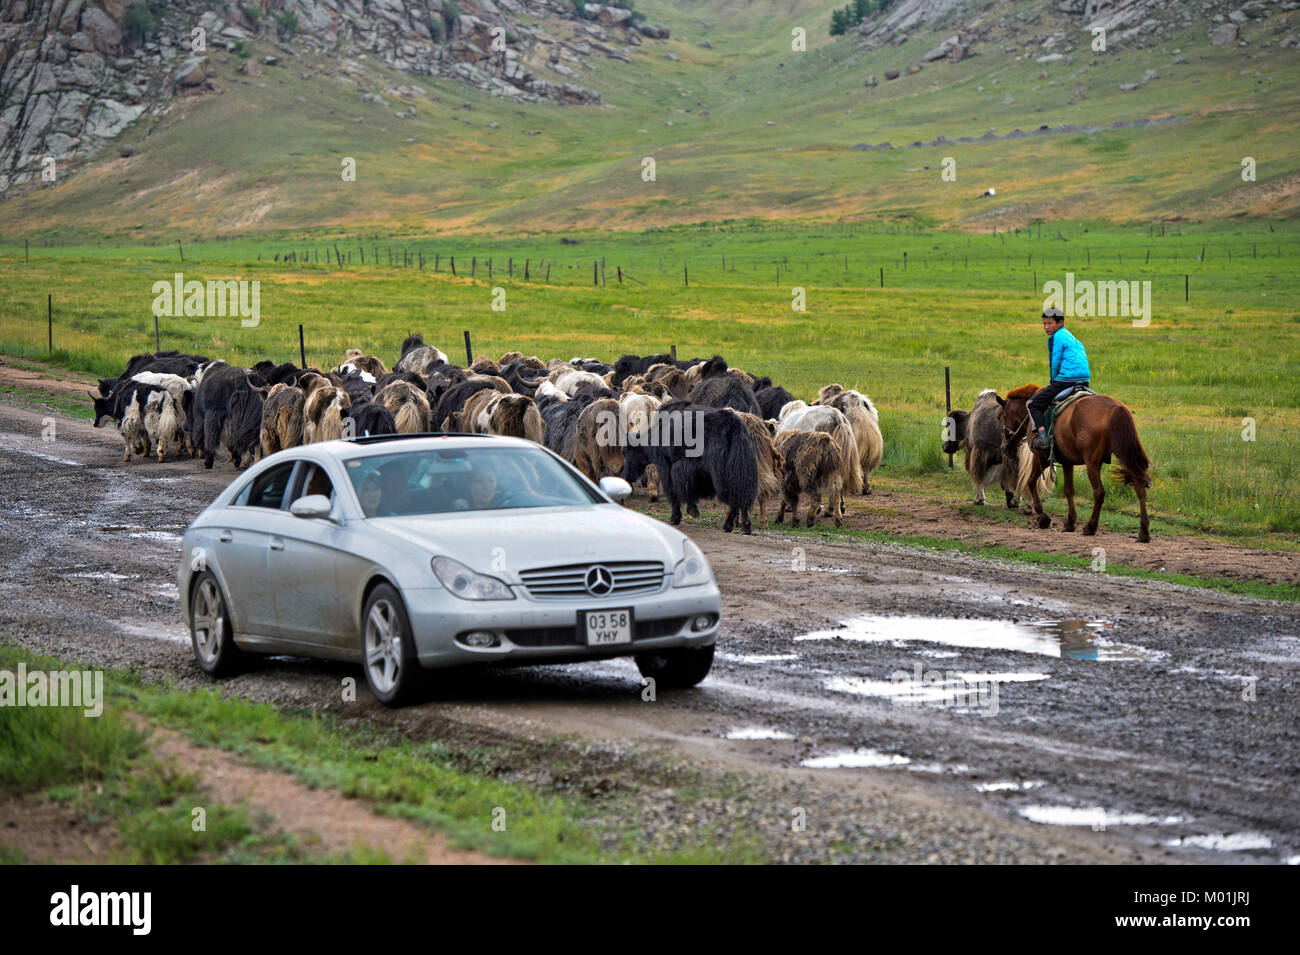 A herd of Yaks and a Mercedes car meeting on a muddy country road, Gorkhi-Terelj National Park, Mongolia - Stock Image